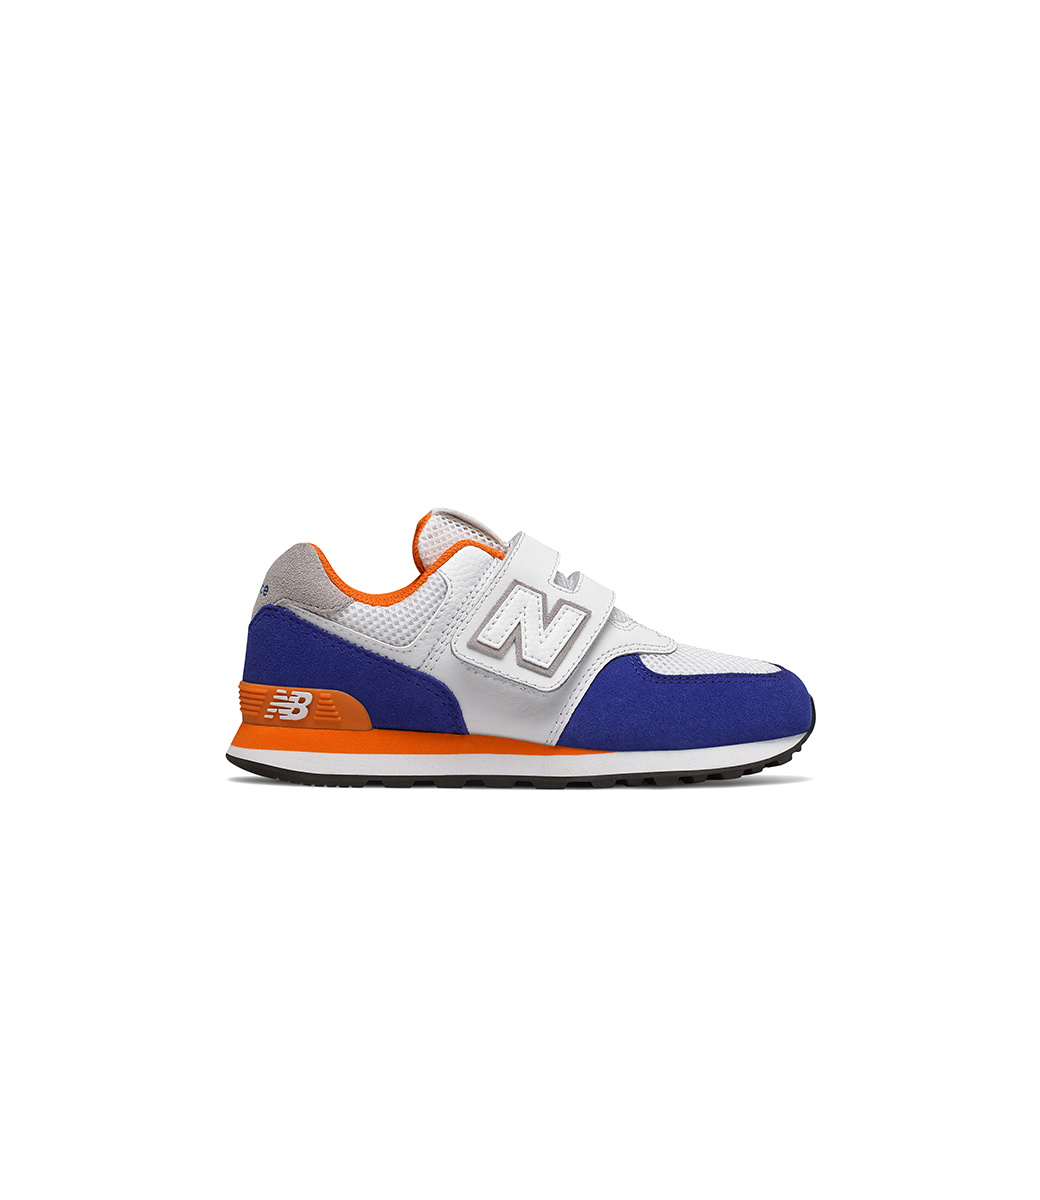 new style befa8 25707 New Balance 574 Blue & Orange | Tony Pappas